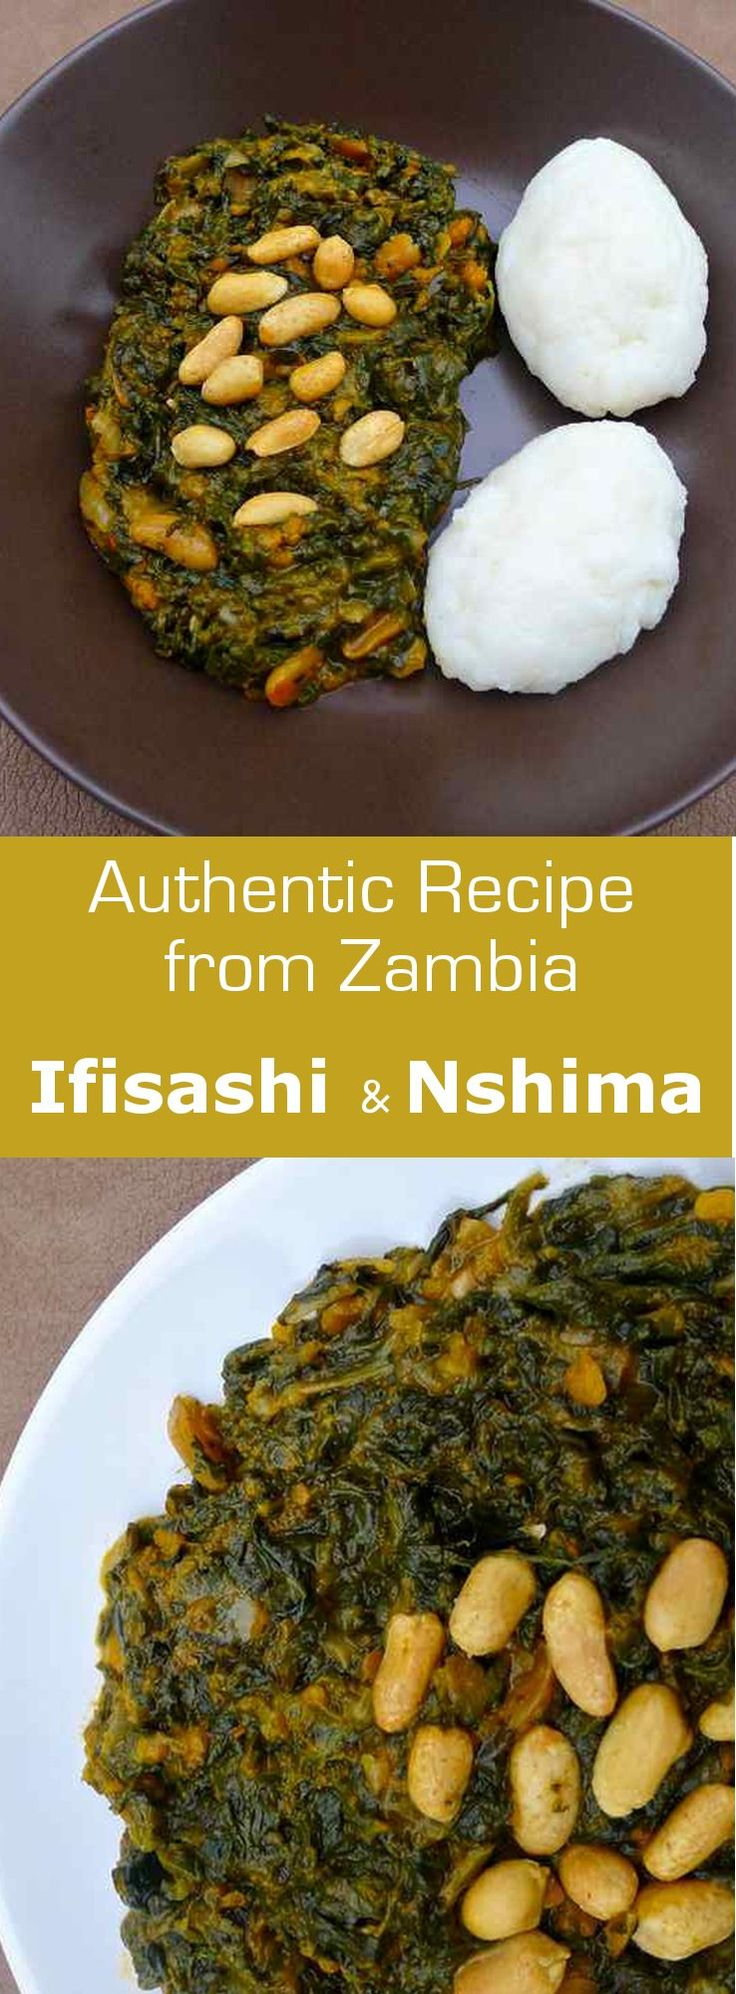 Ifisashi, a traditional vegetarian dish from Zambia, is typically served with…